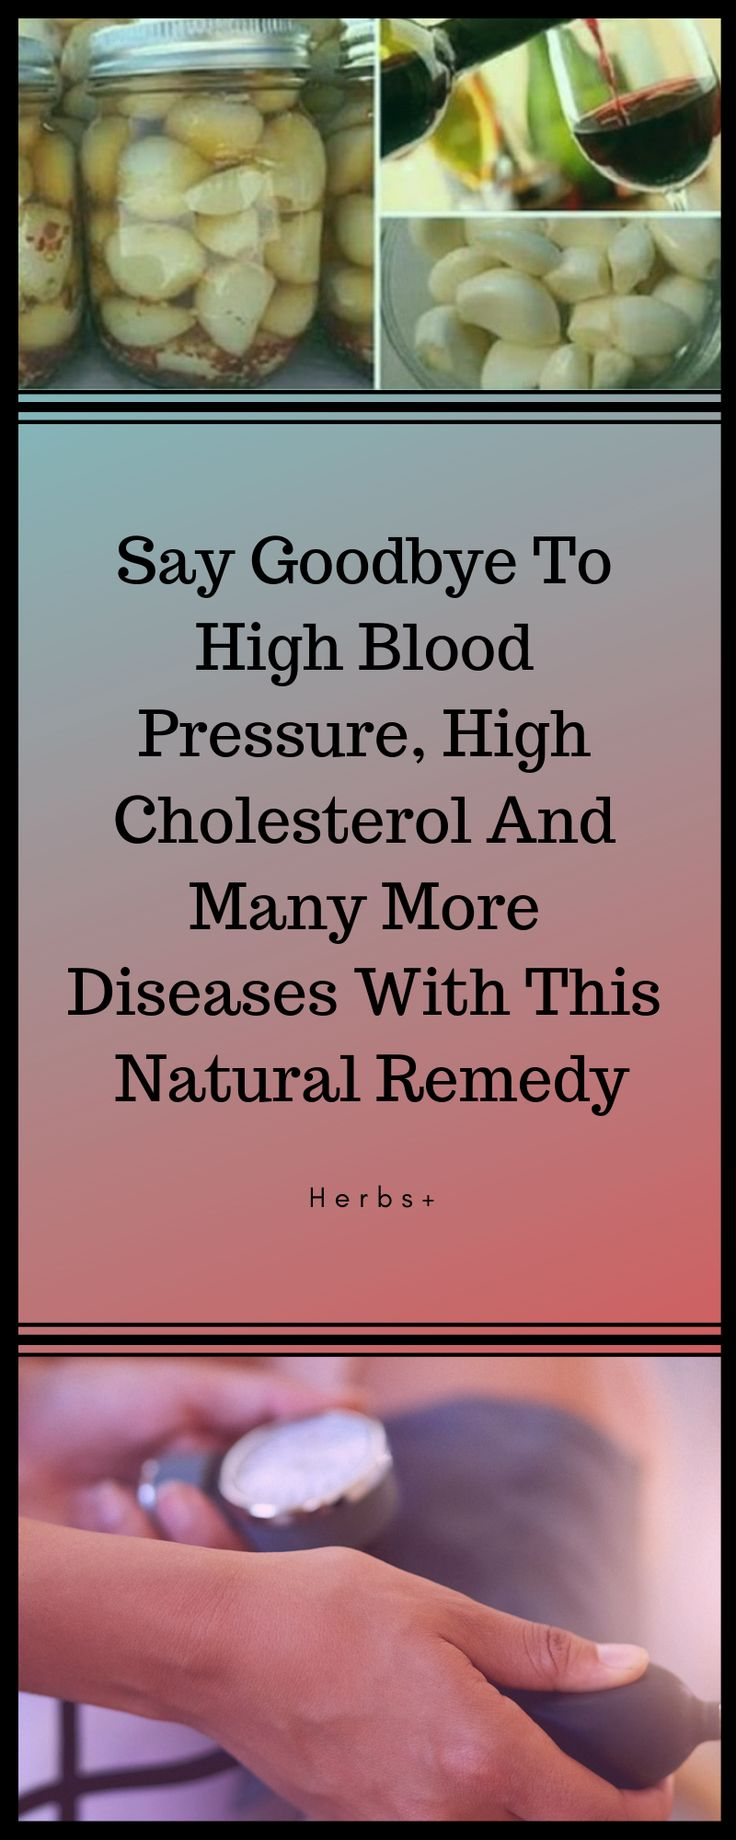 Say Goodbye To High Blood Pressure, High Cholesterol And Many More Diseases With This Natural Remedy